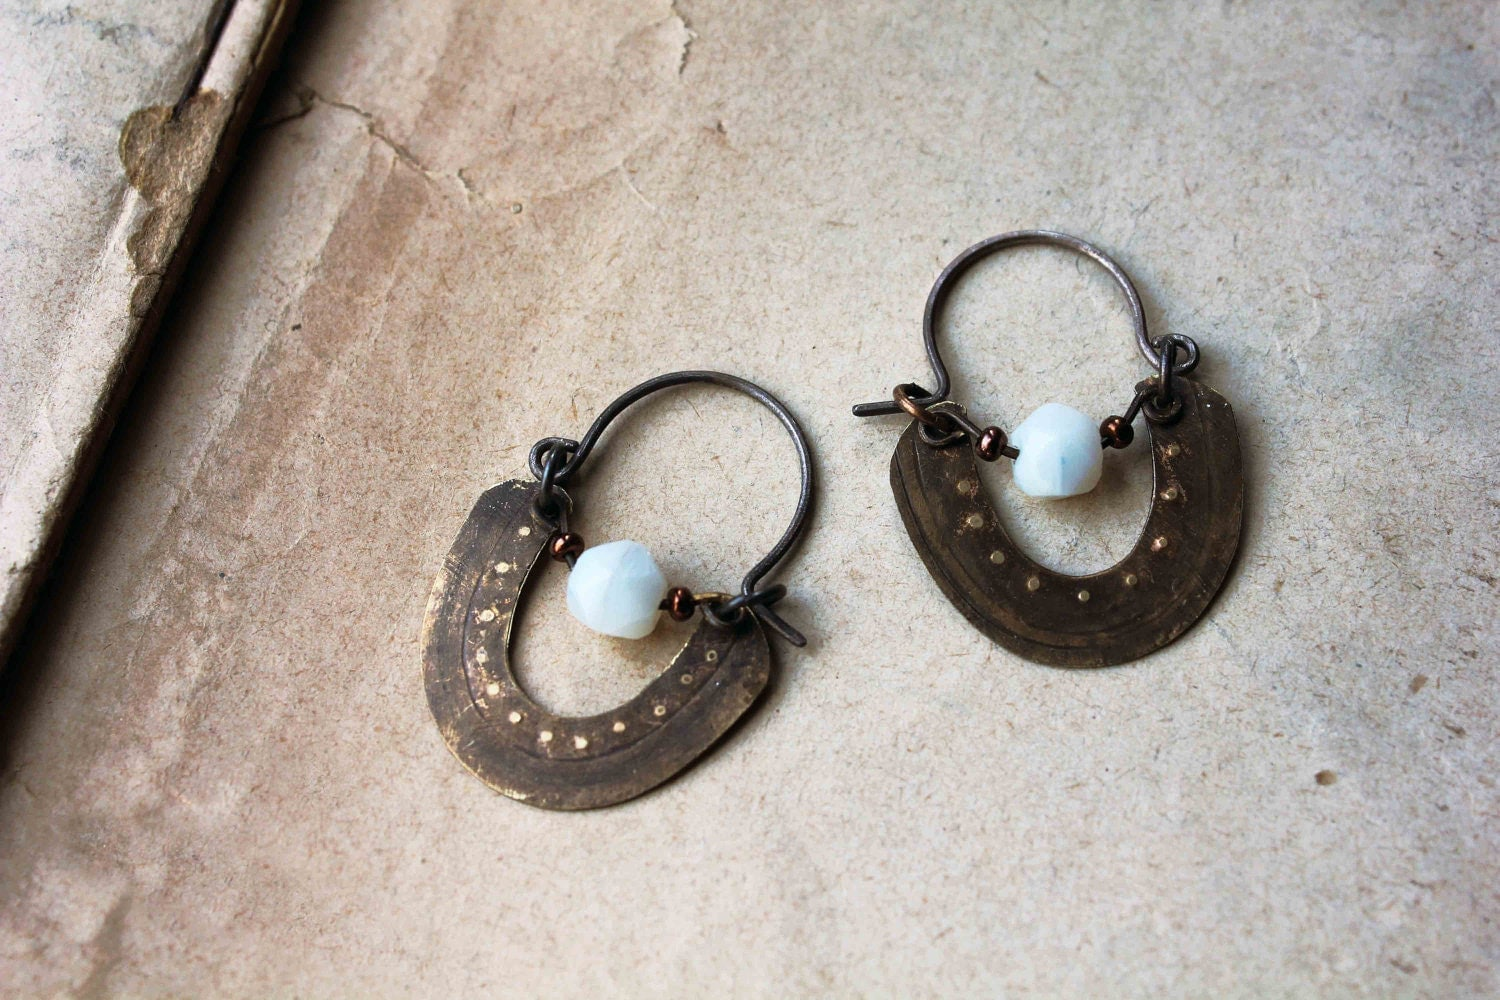 Byzantines hoops textured brass ethnic boho chic earrings